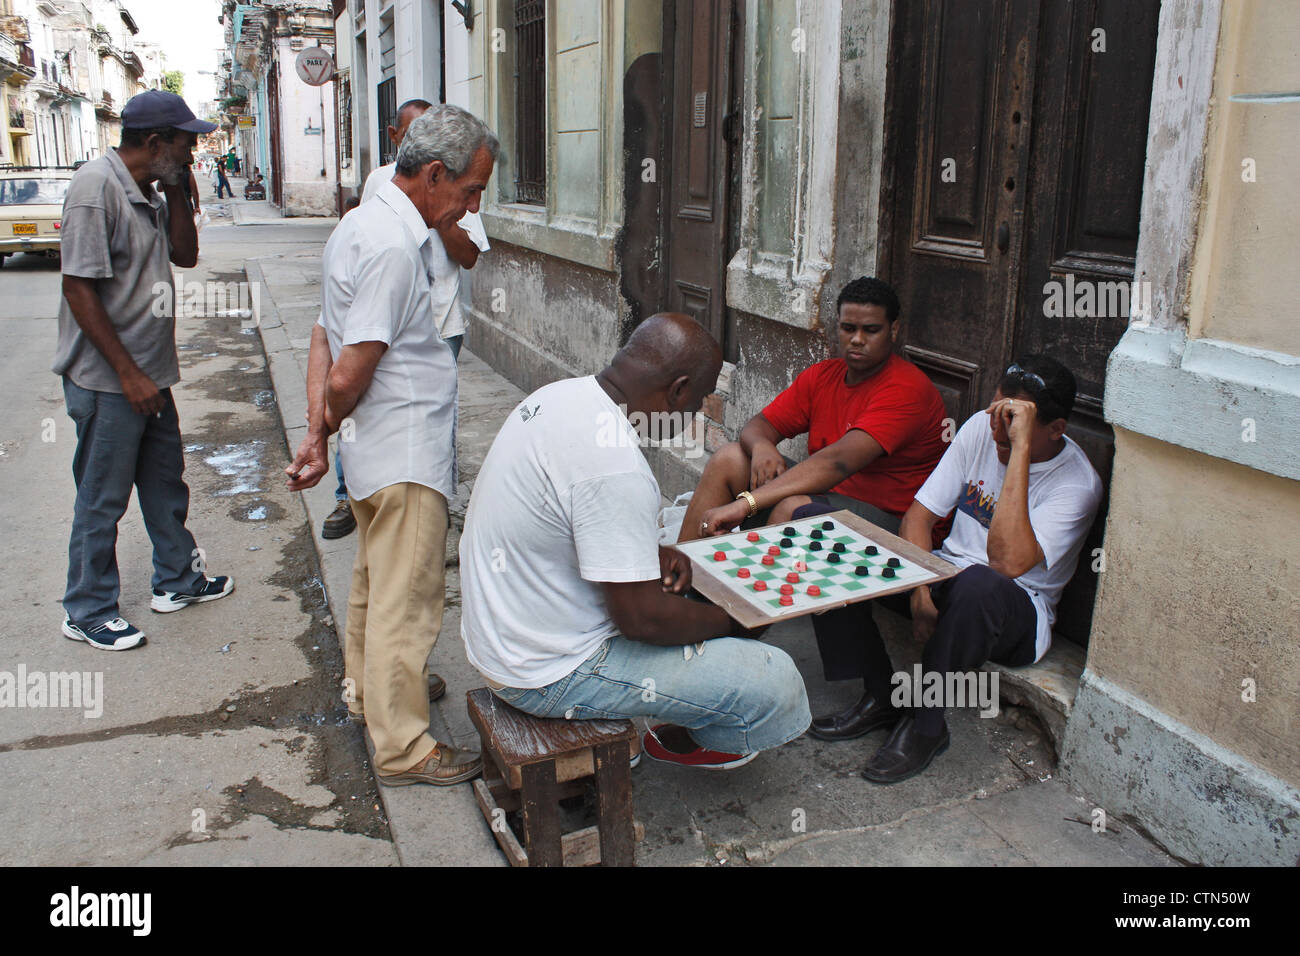 local men play checkers or draughts on the street in downtown havana, cuba - Stock Image